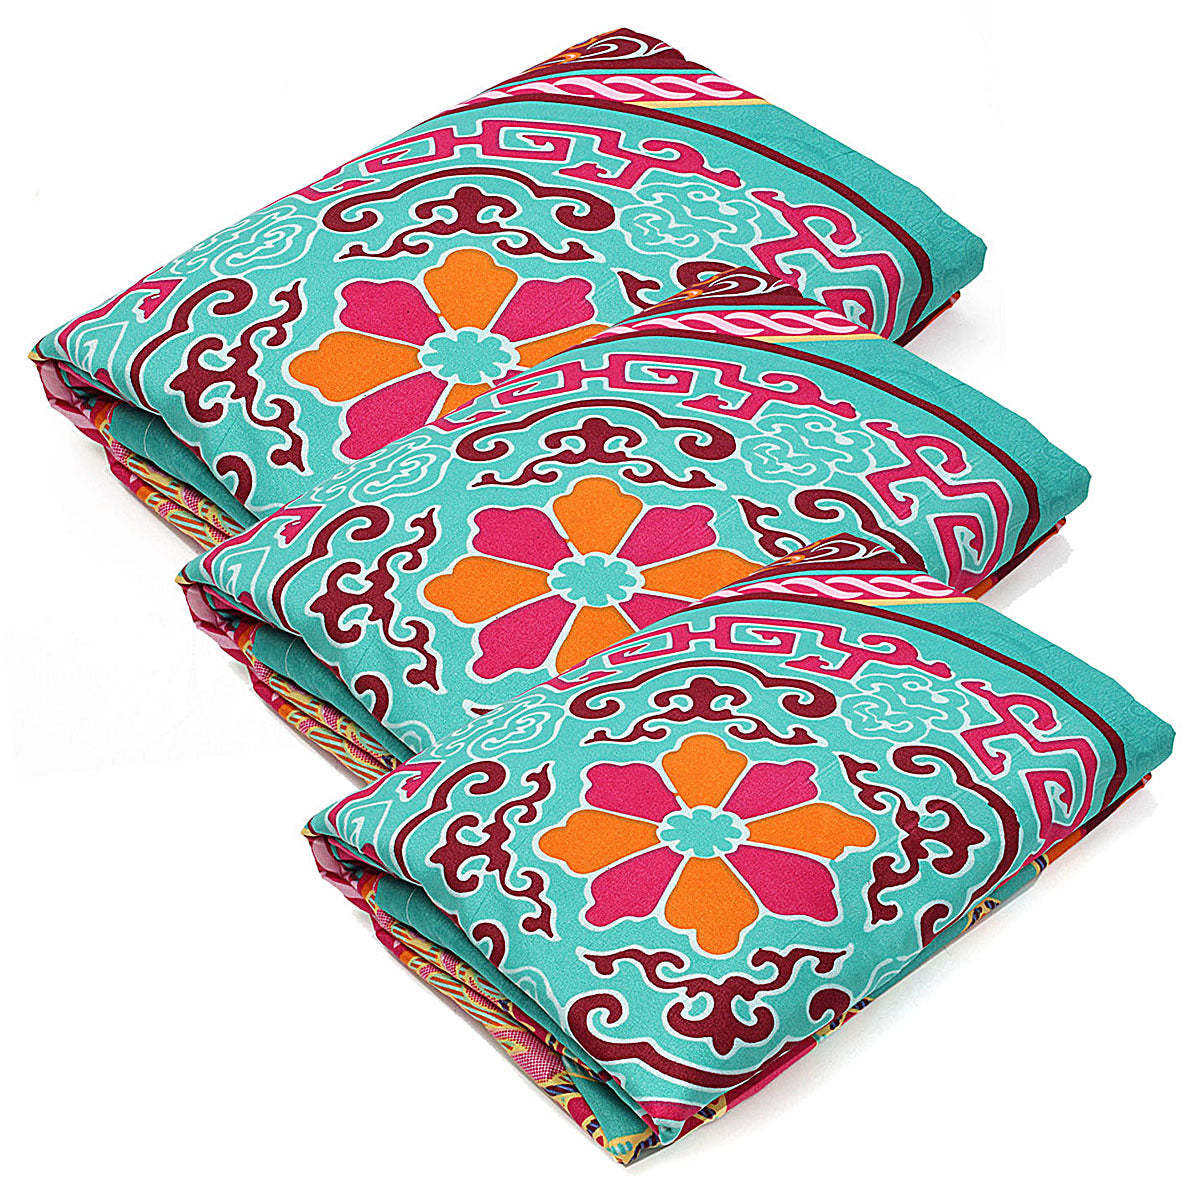 cozyrex,4Pcs Oriental Mandala Polyester Single Double Queen Size Bedding Pillowcases Quilt Duvet Cover Set,CozyRex,